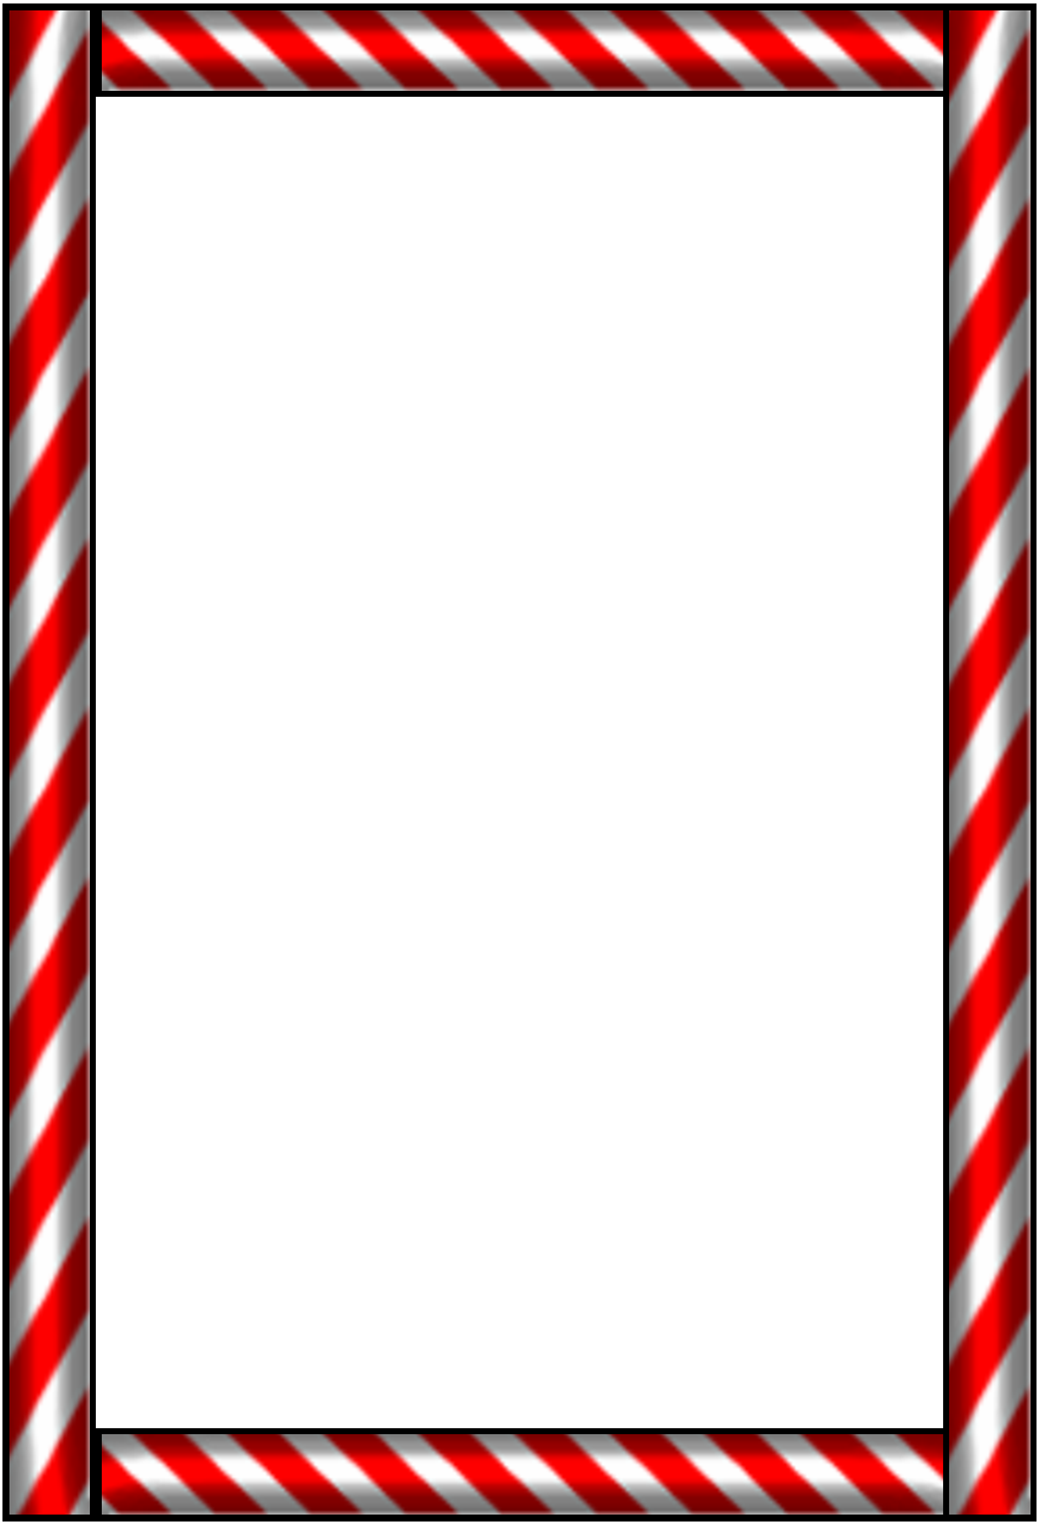 candy cane clip art borders google search christmas clip art rh pinterest com border clip art black and white border cliparts